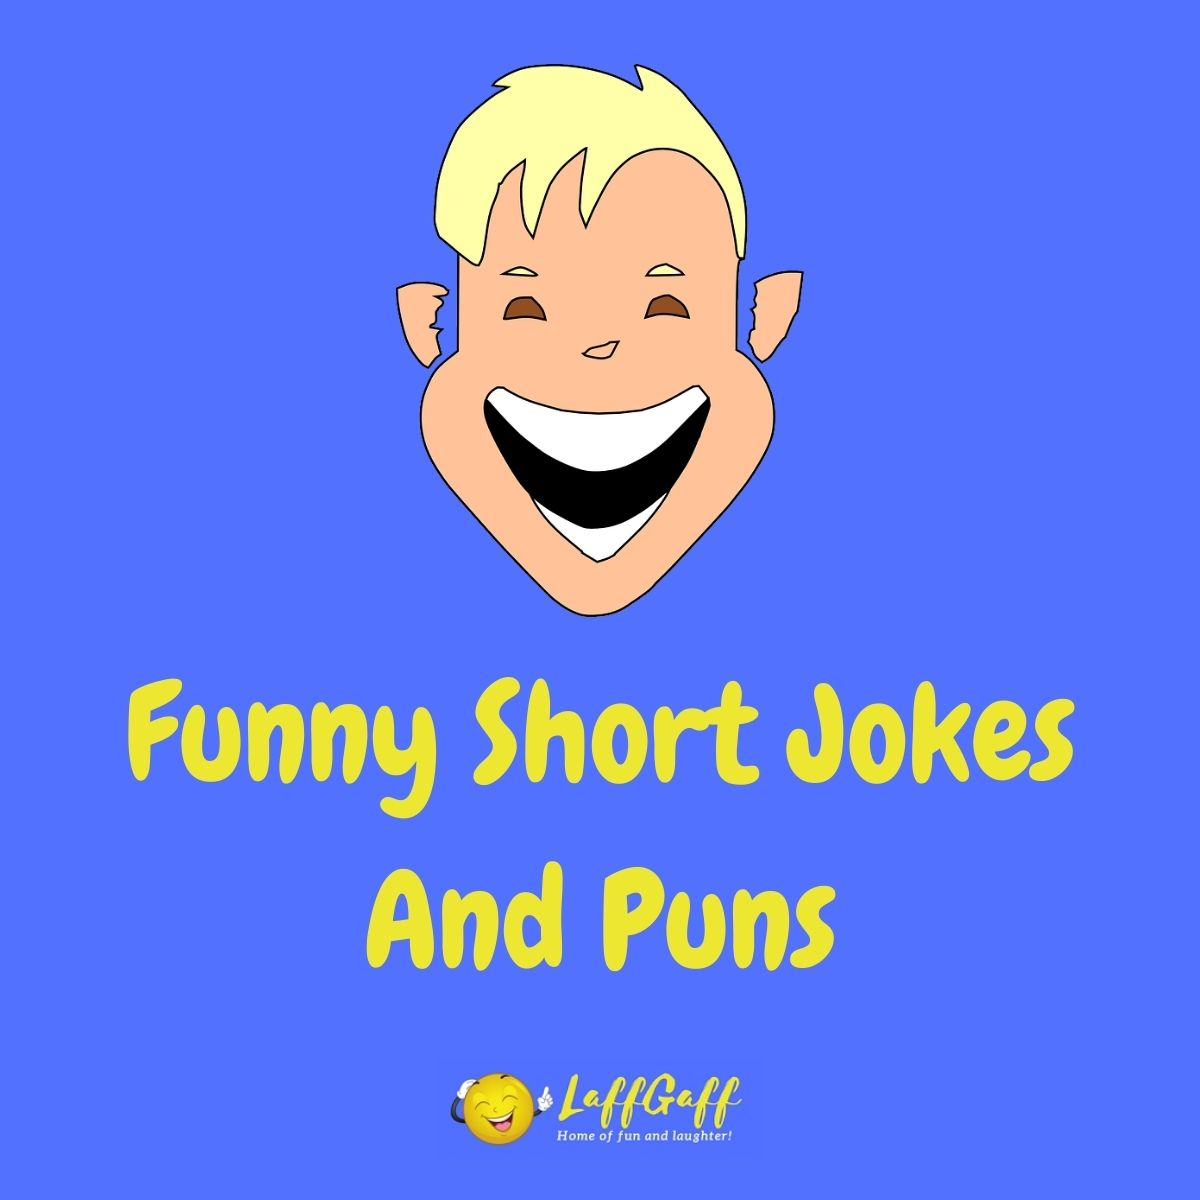 Featured image for a page of really funny short jokes and puns.